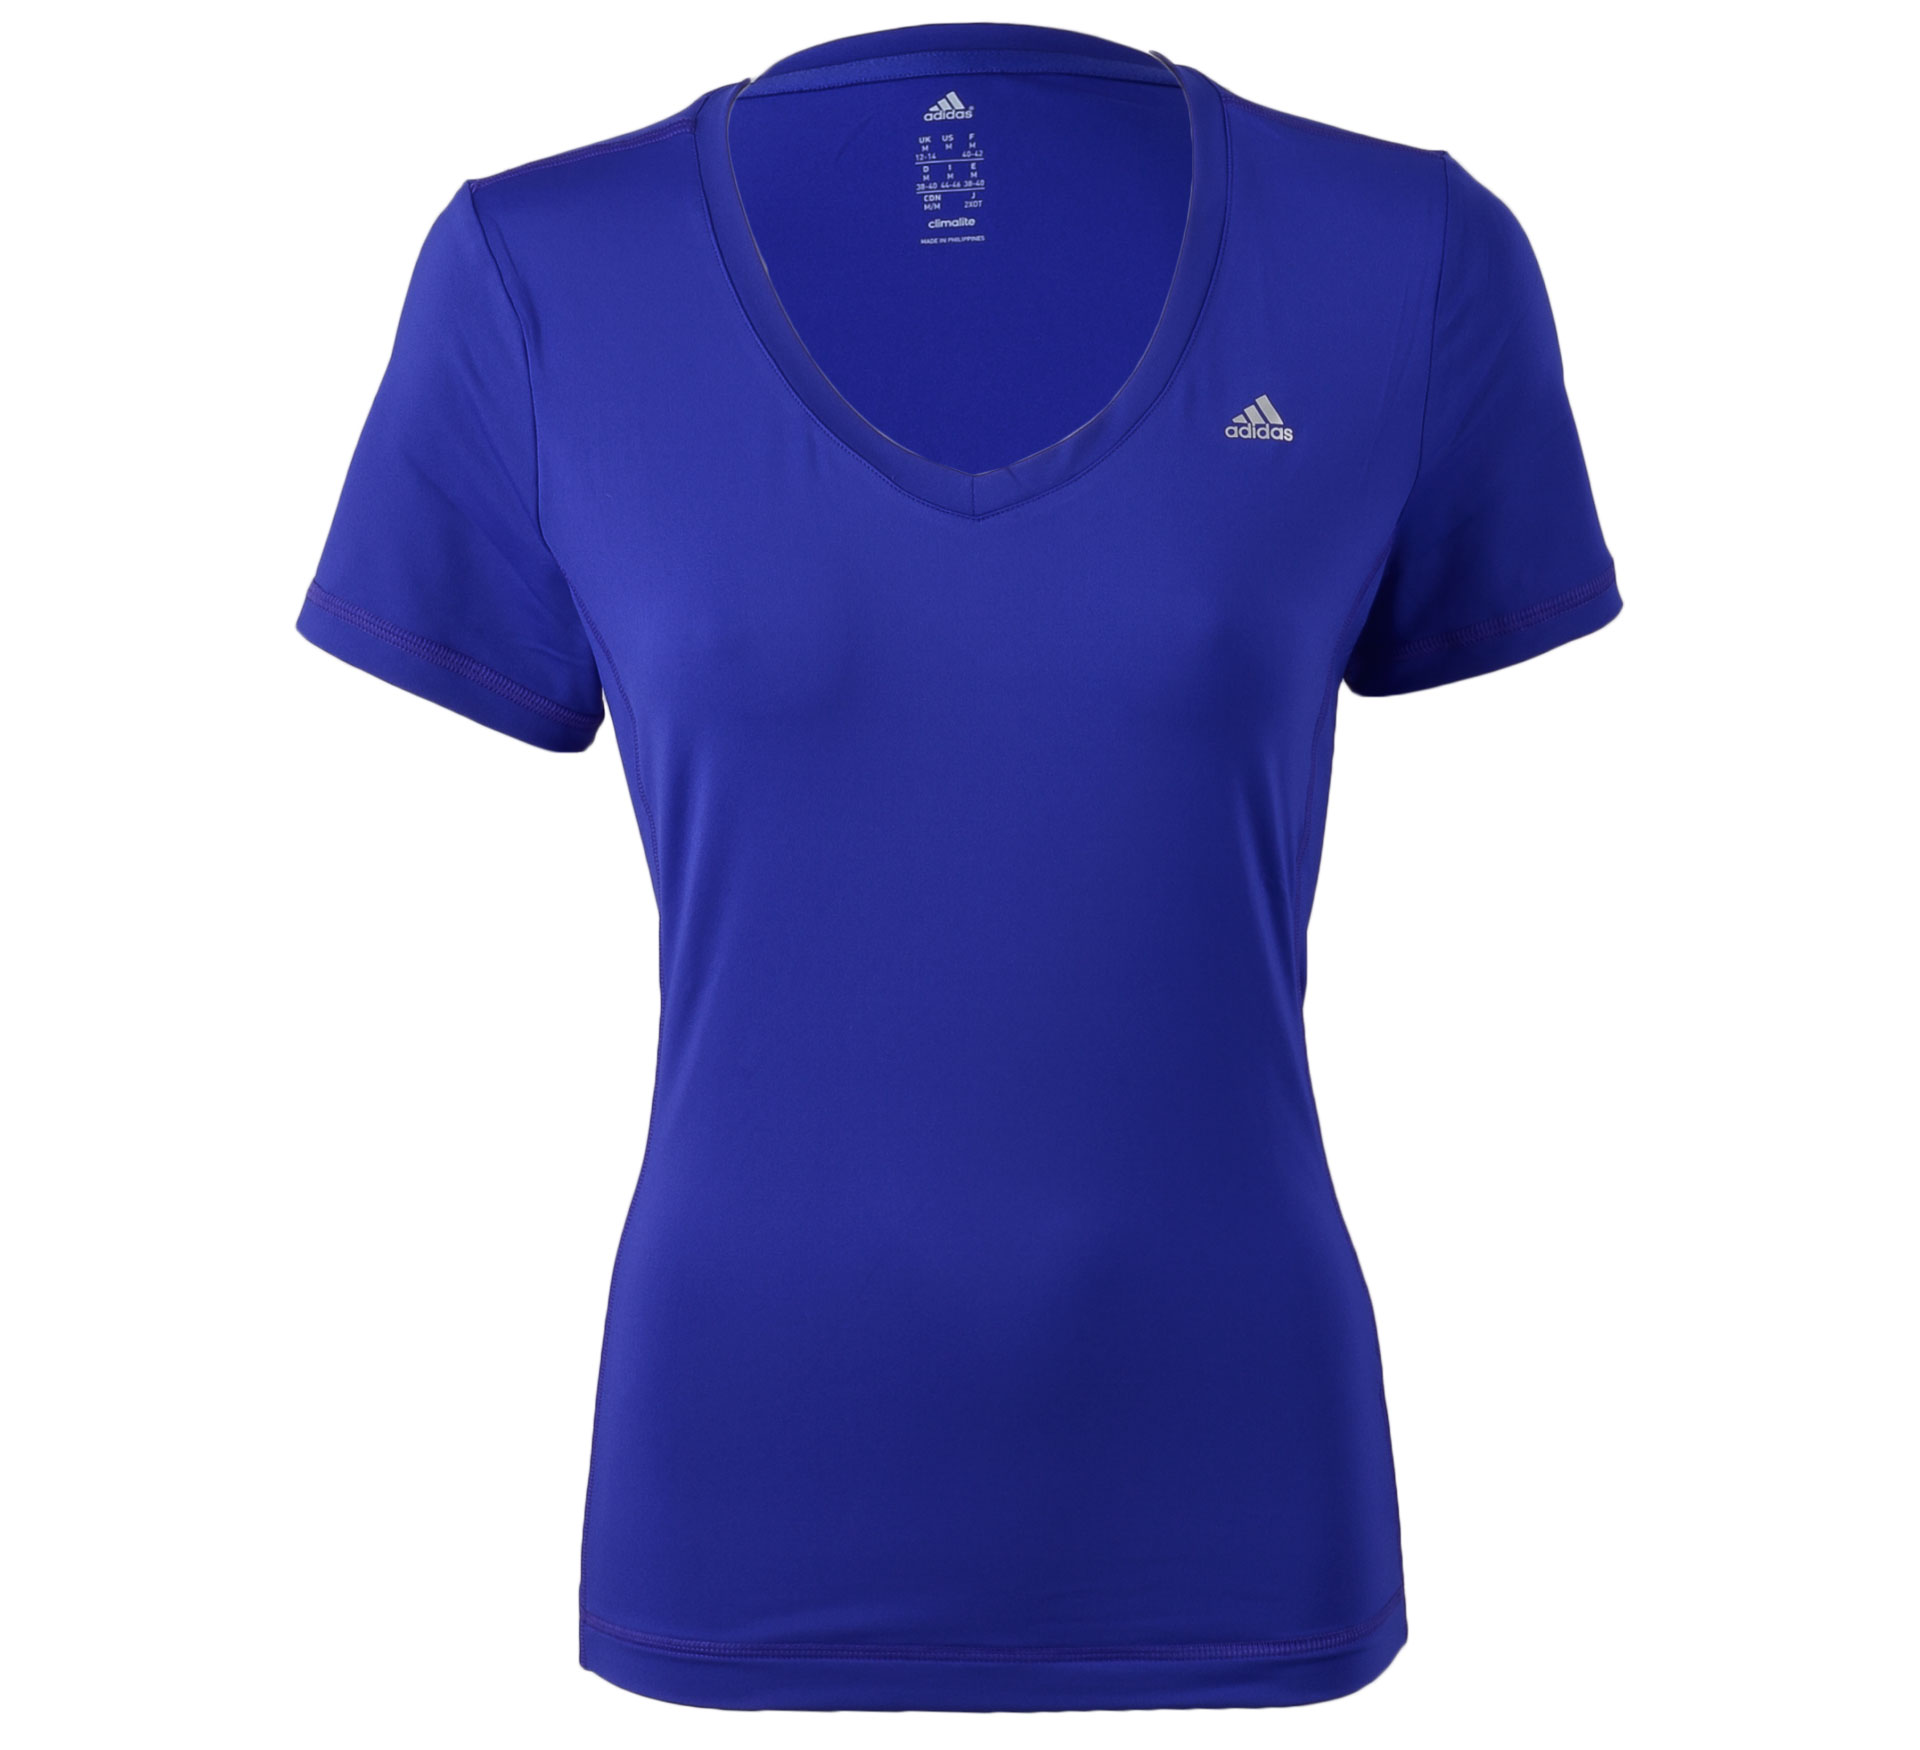 Adidas Clima Essentials T-shirt Dames paars